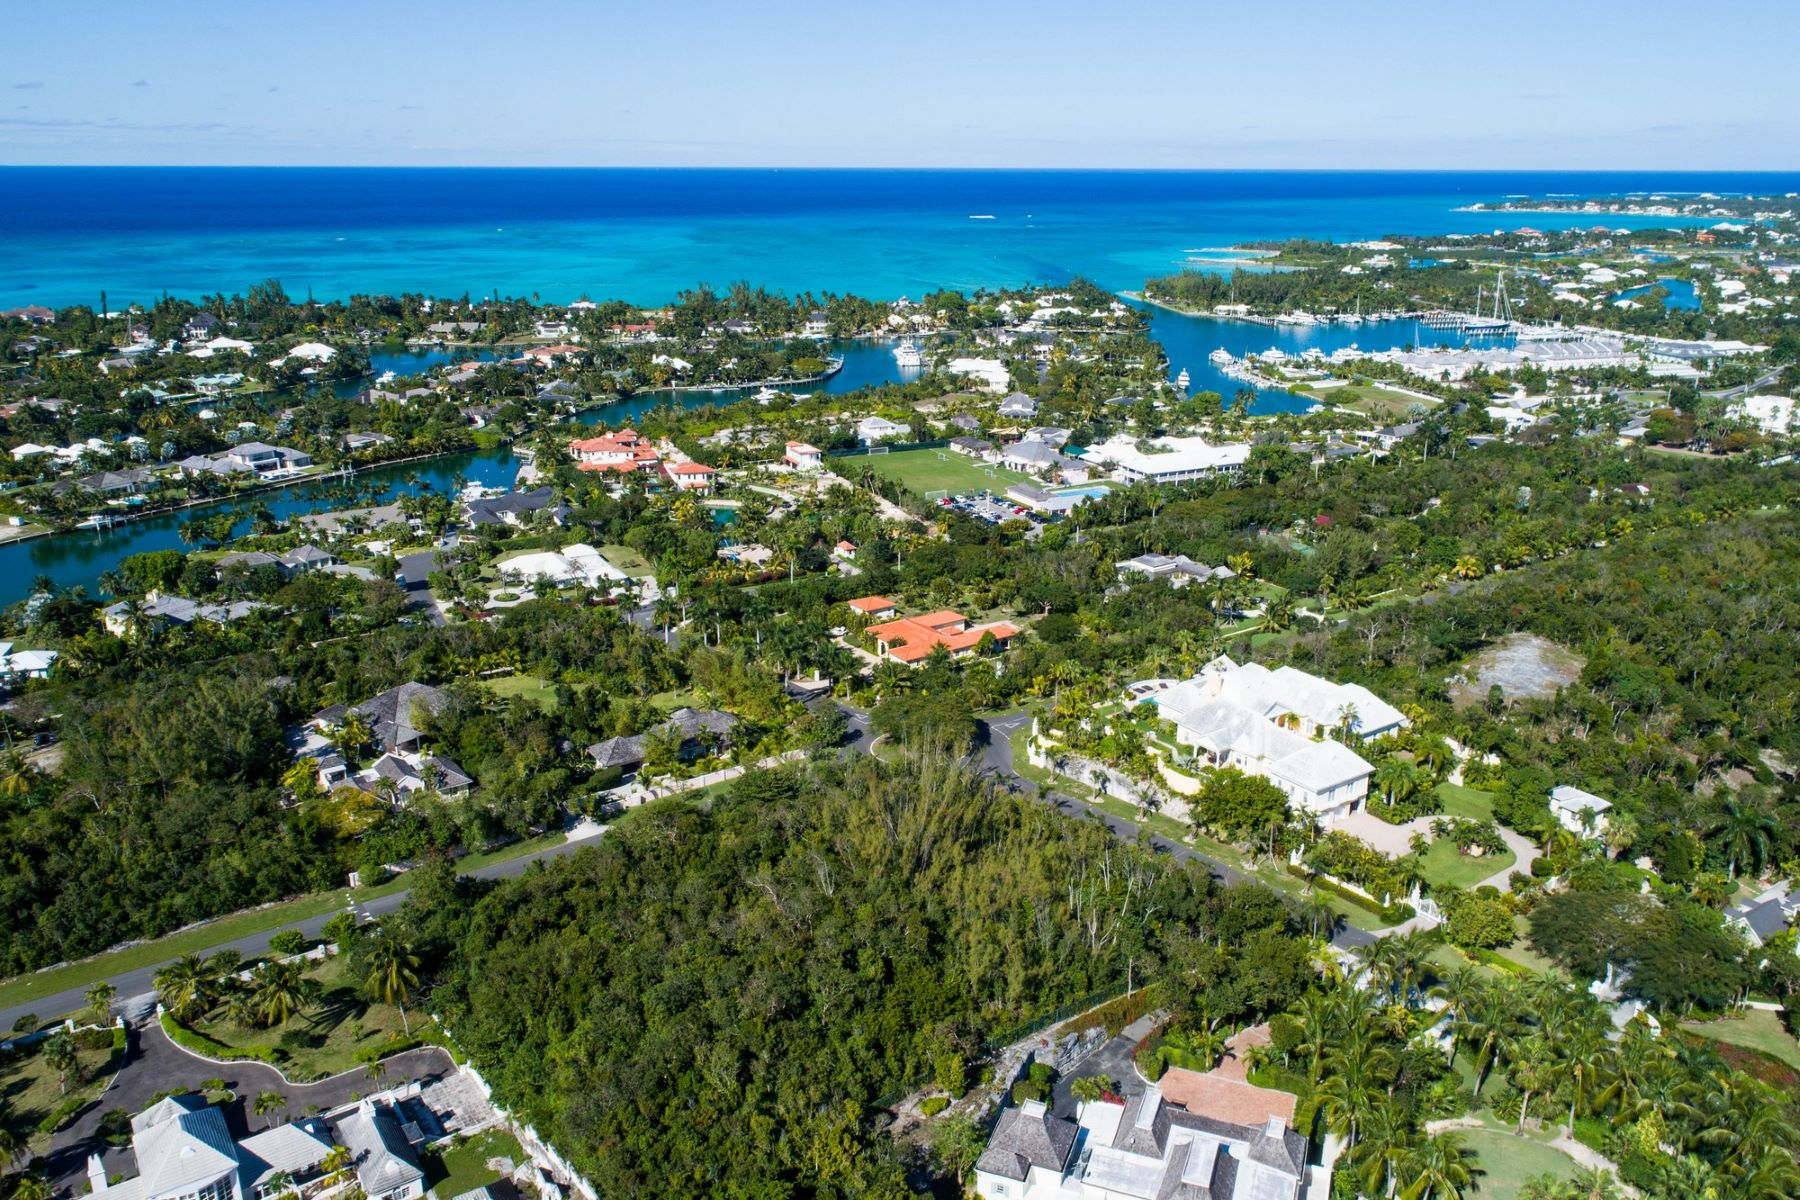 Land for Sale at Bougainvillea Drive West B44 L9 Lyford Cay, Nassau And Paradise Island Bahamas